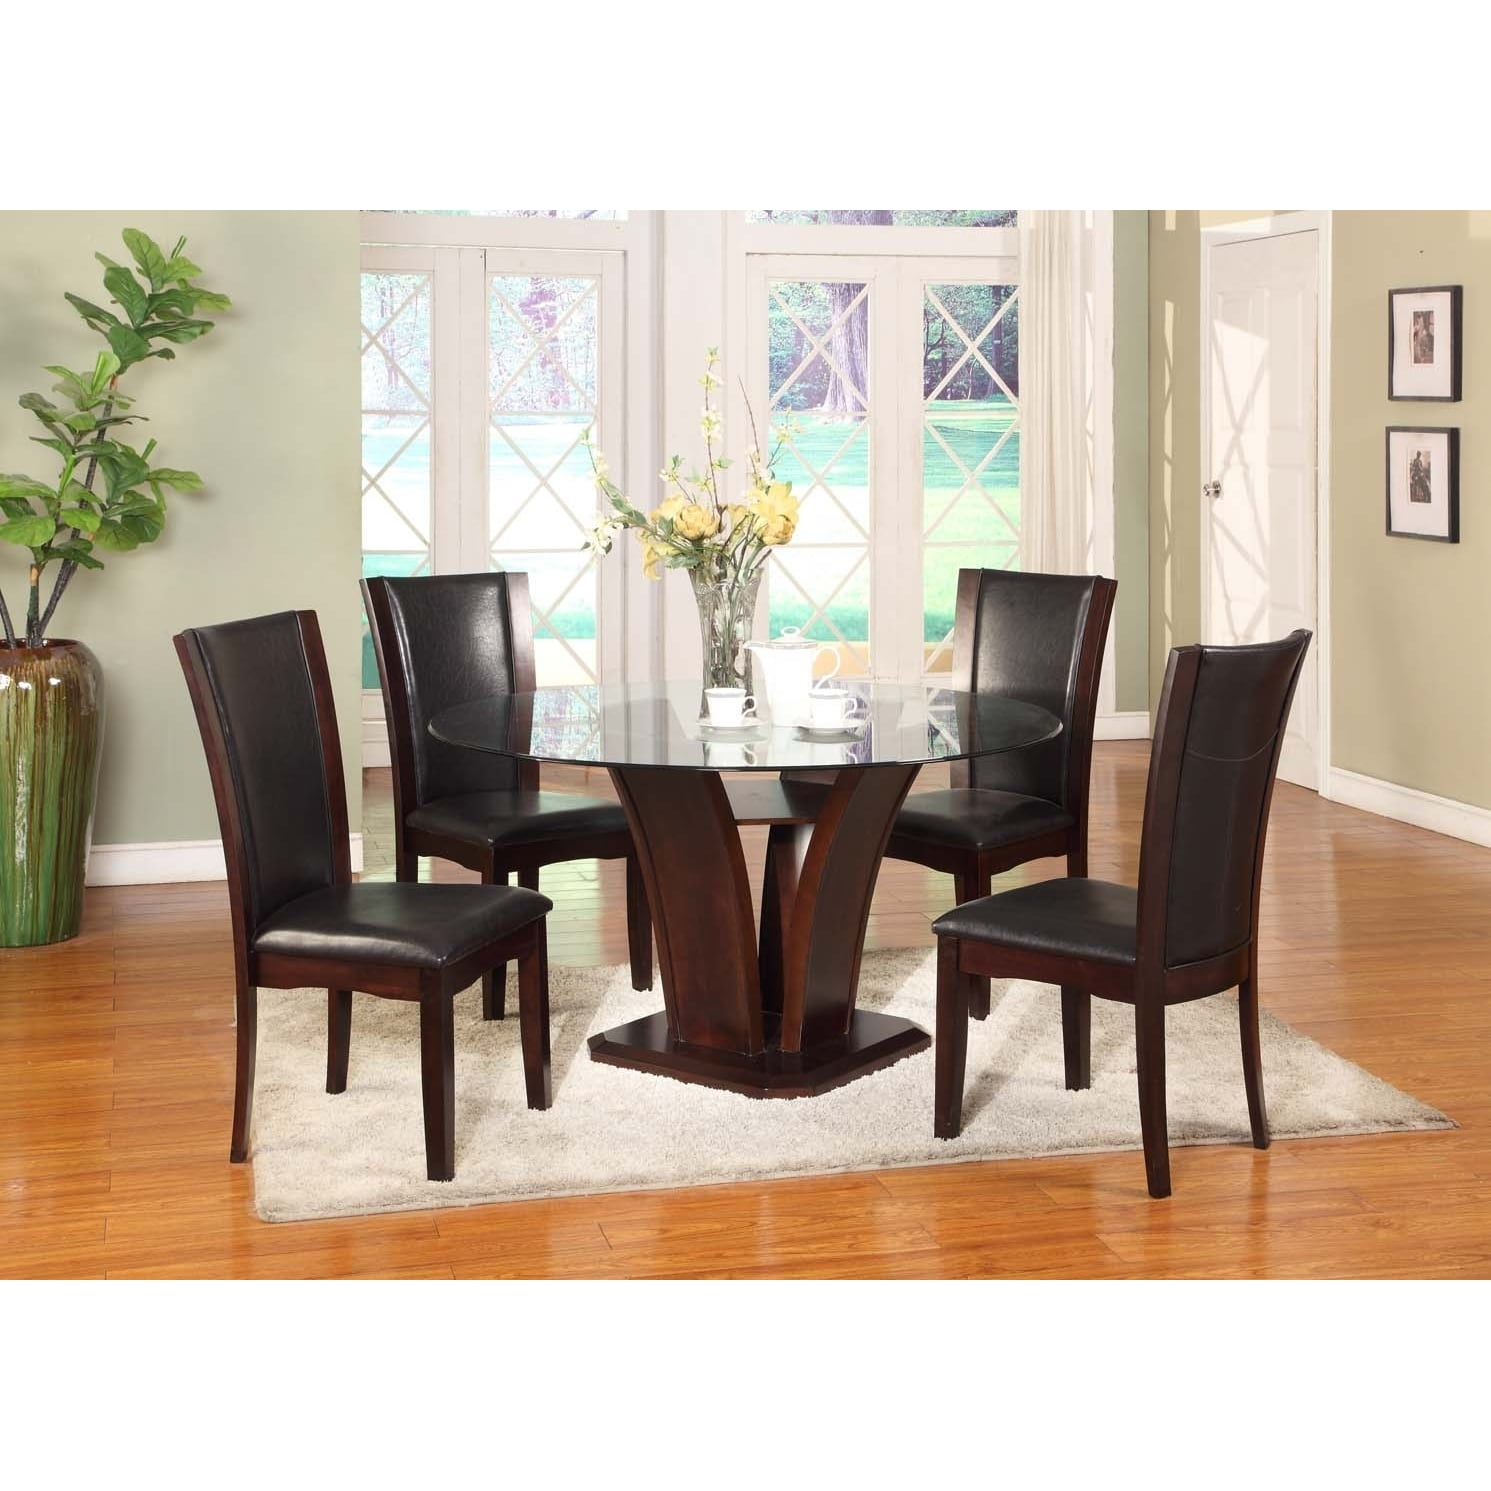 Roundhill Furniture Kecco 5 Piece Round Faux Leather Dining Table Set